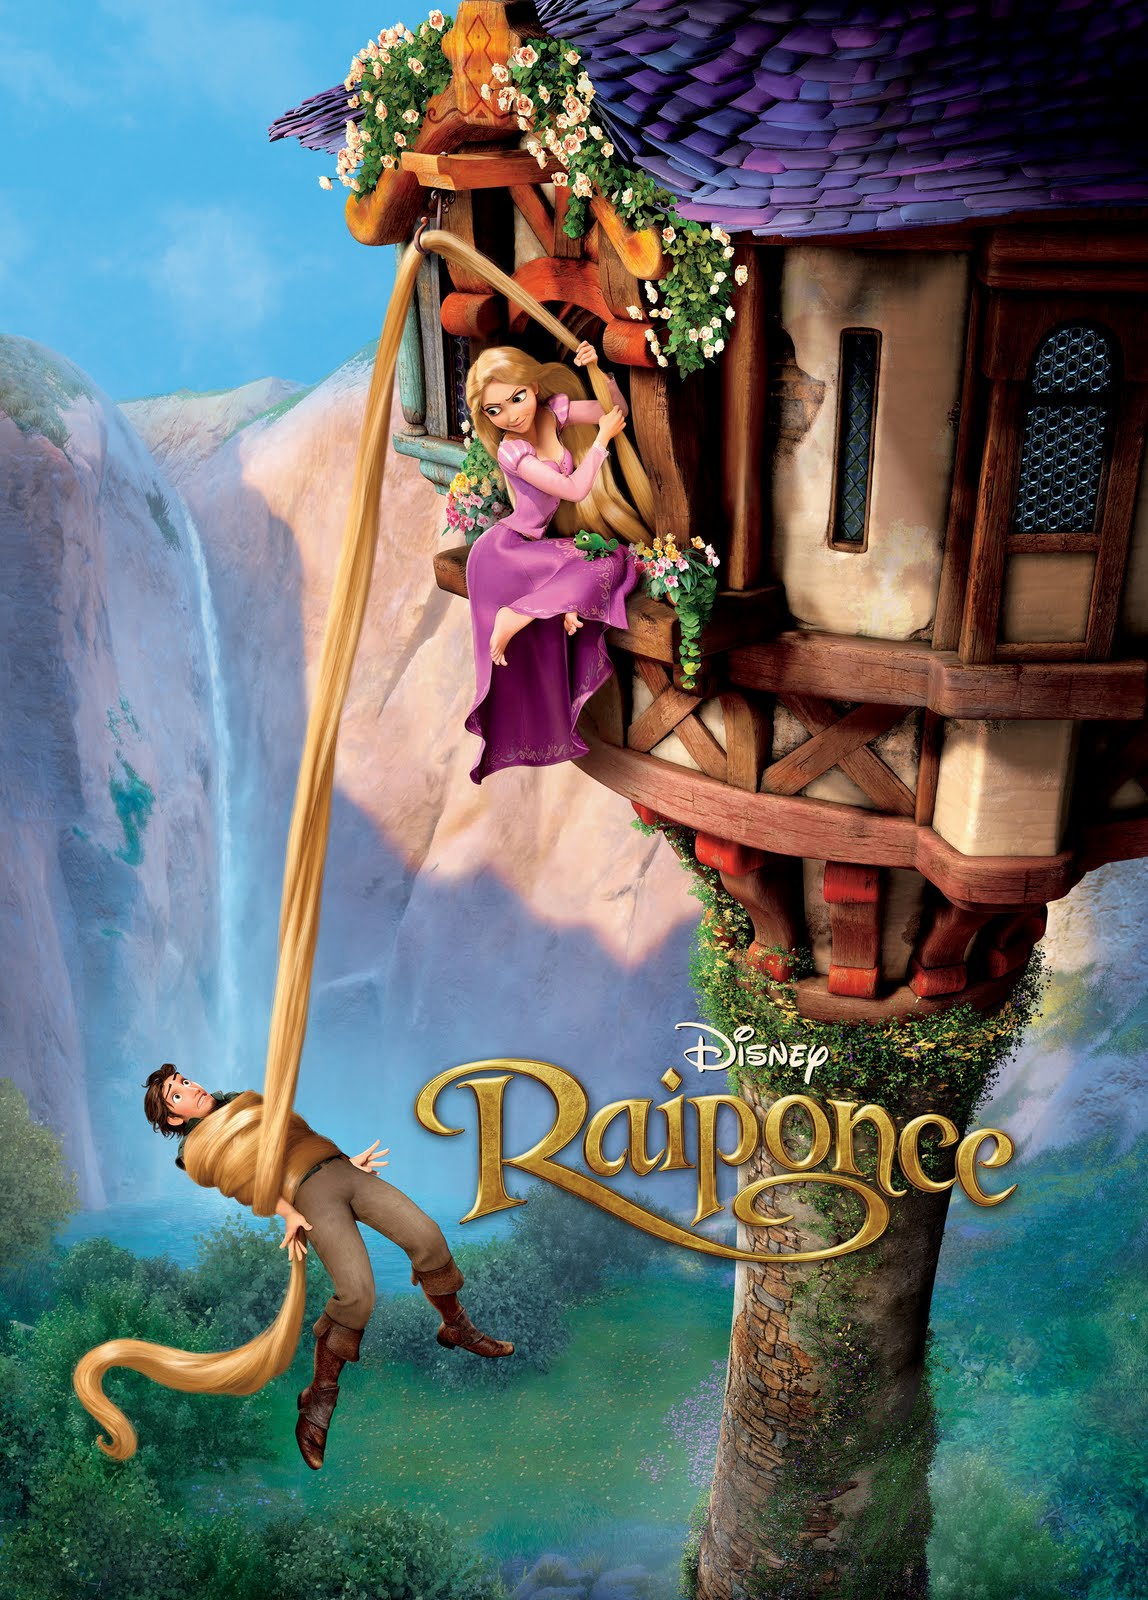 Crazy sandy raiponce tangled affiches images - Images raiponce ...